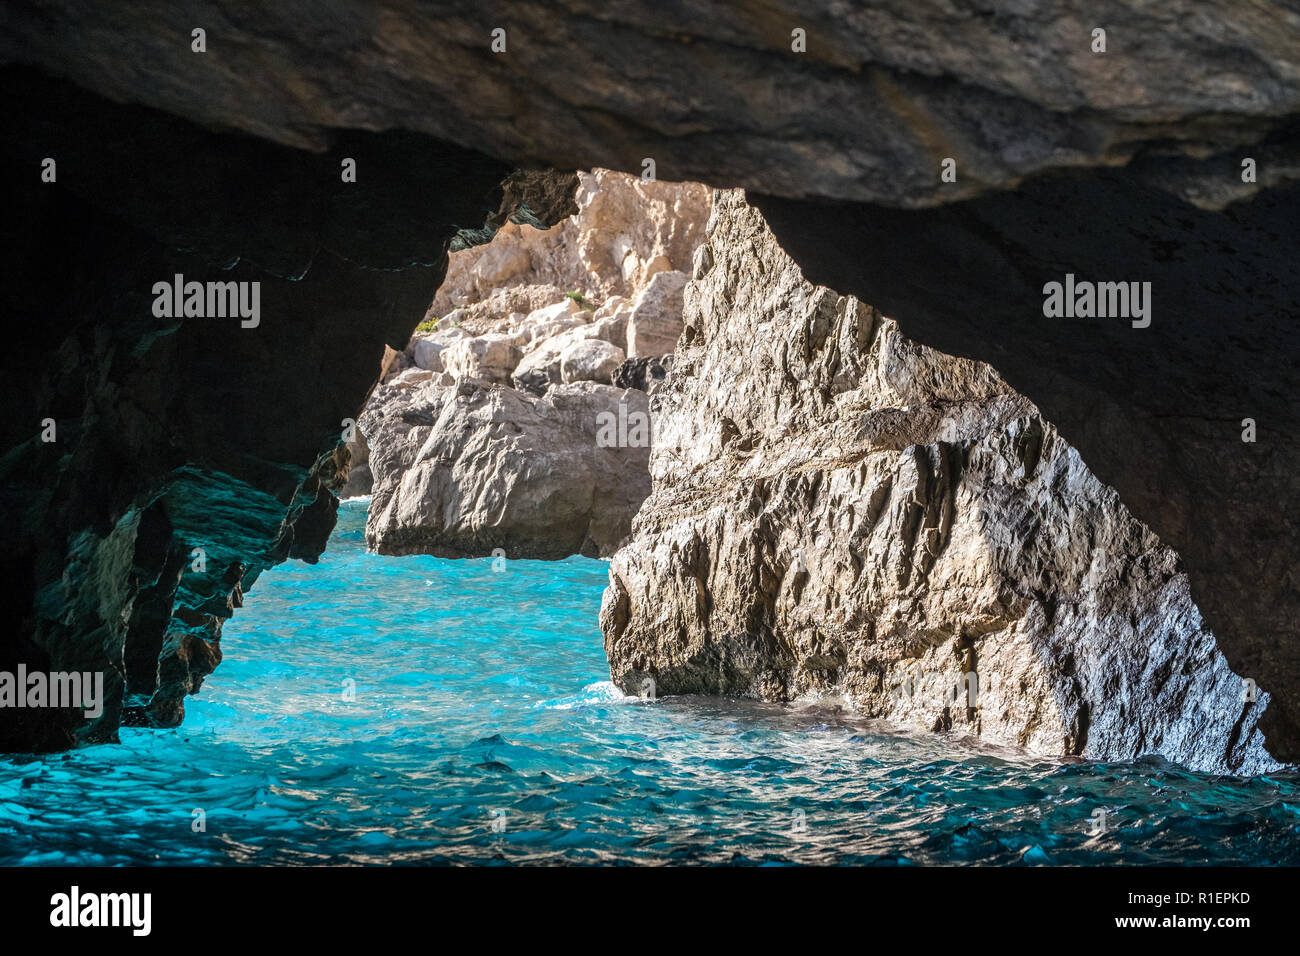 The Green Grotto (also known as The Emerald Grotto), Grotta Verde, on the coast of the island of Capri in the Bay of Naples, Italy. Stock Photo